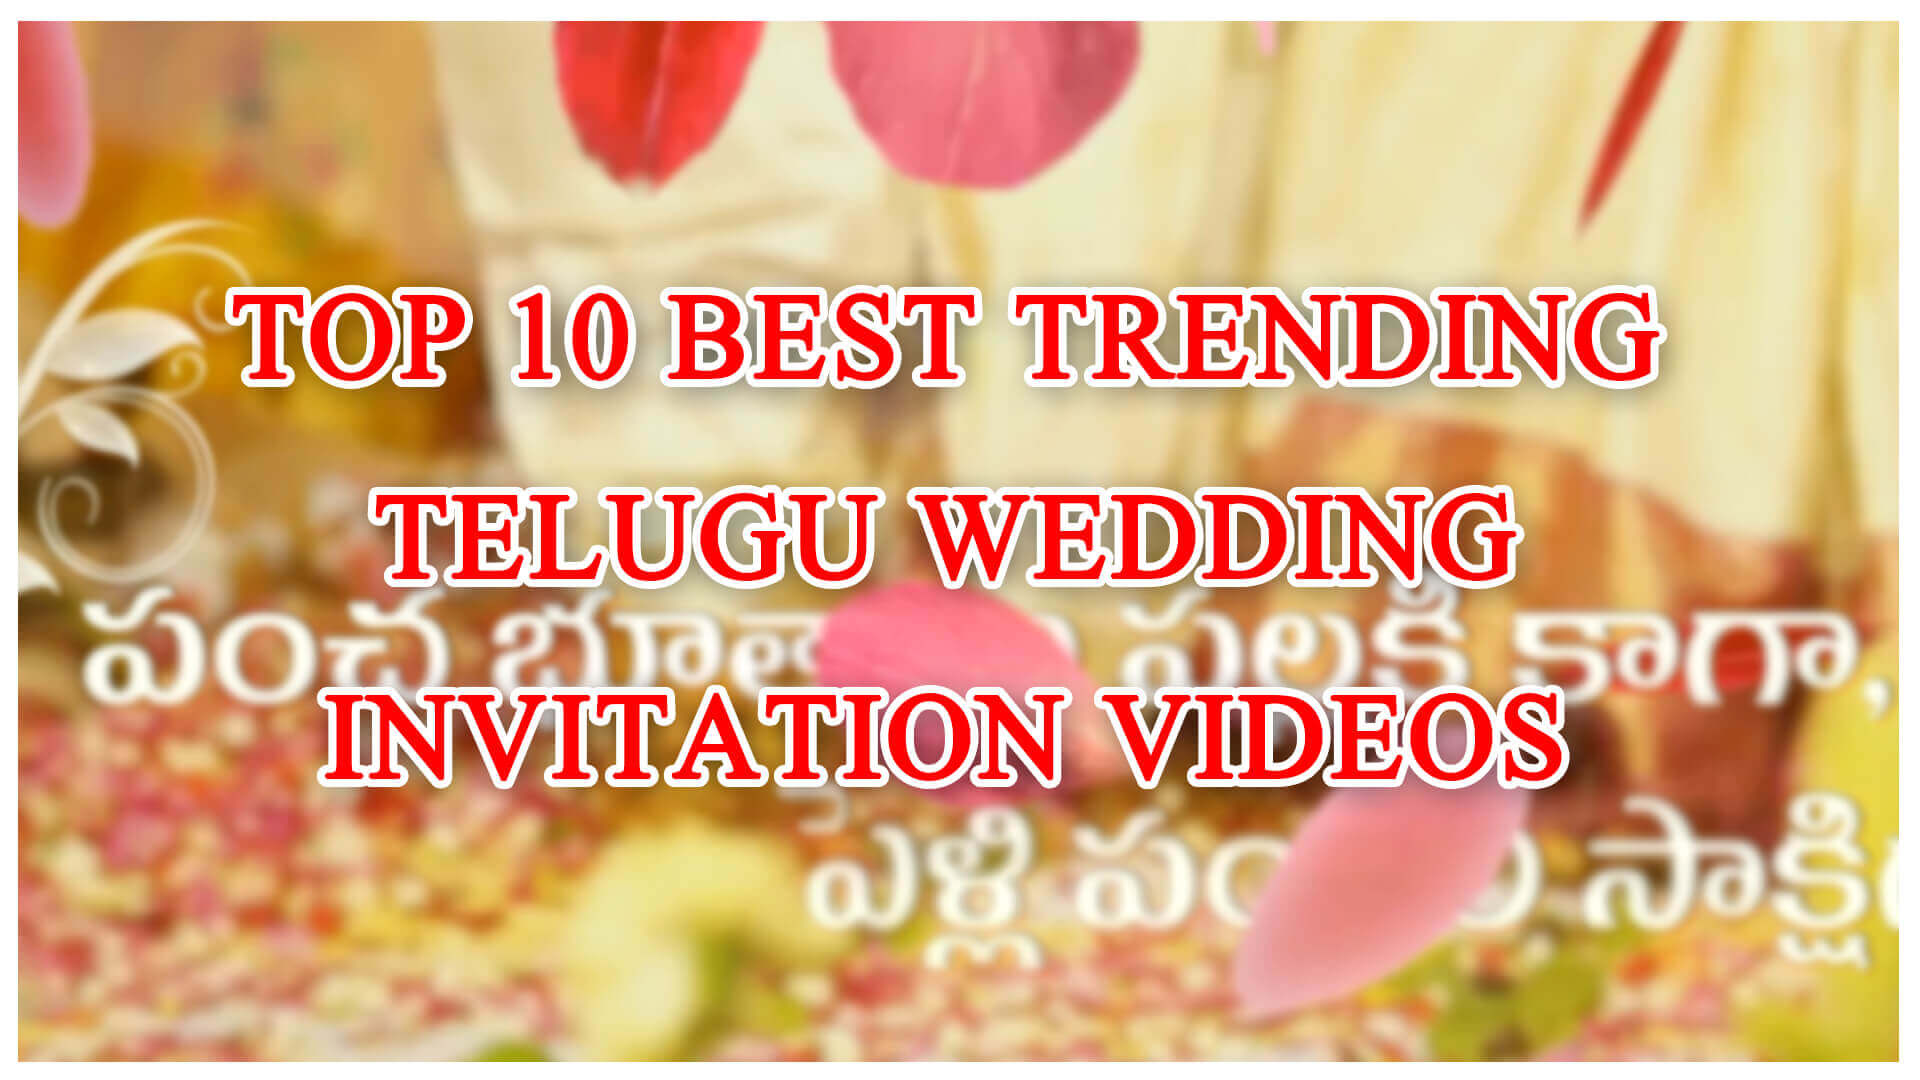 Best telugu wedding invitation videos online youtube top 10 replacing a regular traditional printed wedding card invitation video became a habitual to all the couples who are ready to tie the knot stopboris Choice Image